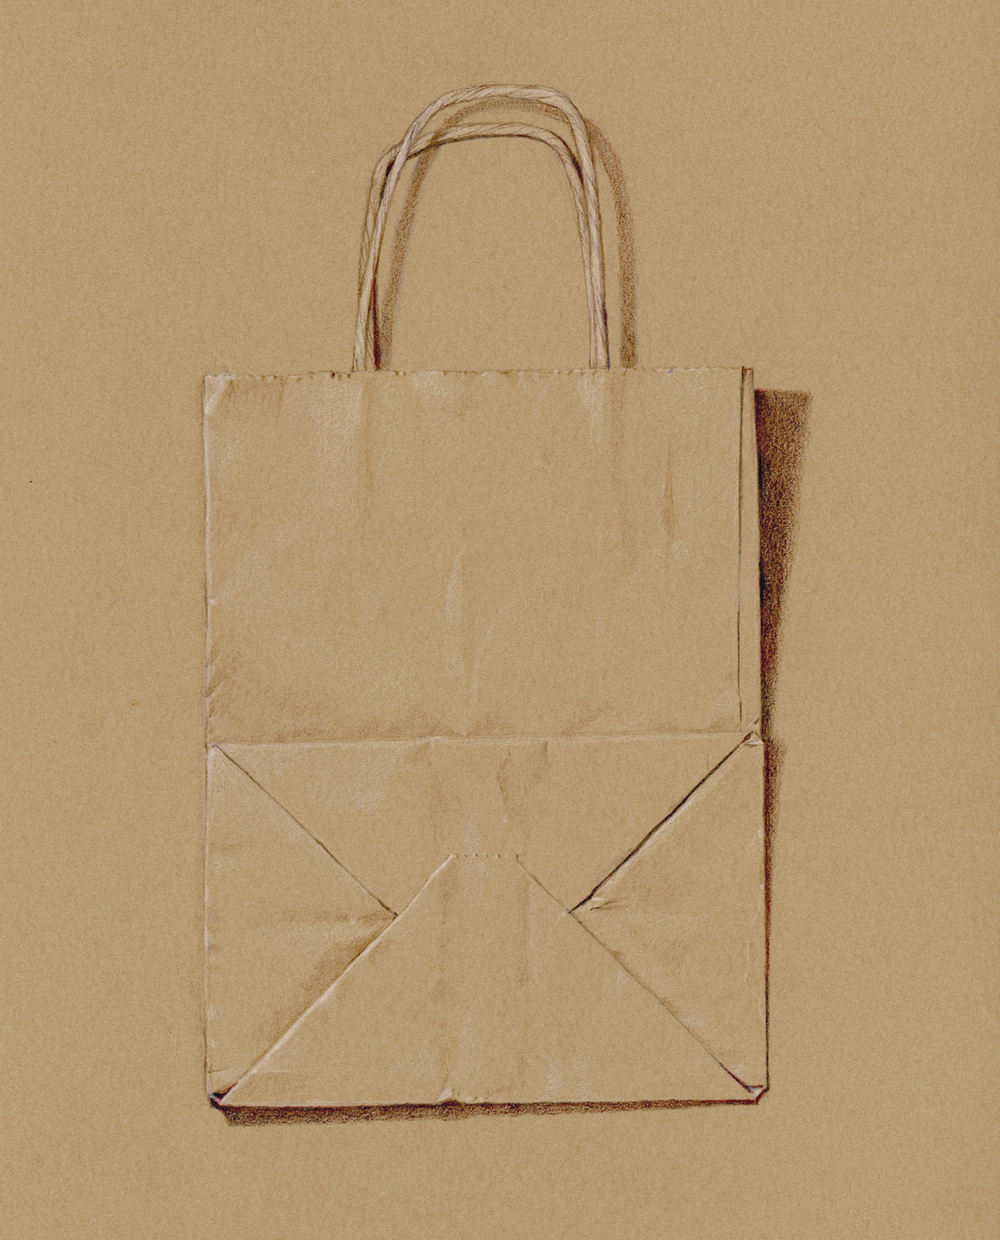 Paper bag - colored pencil